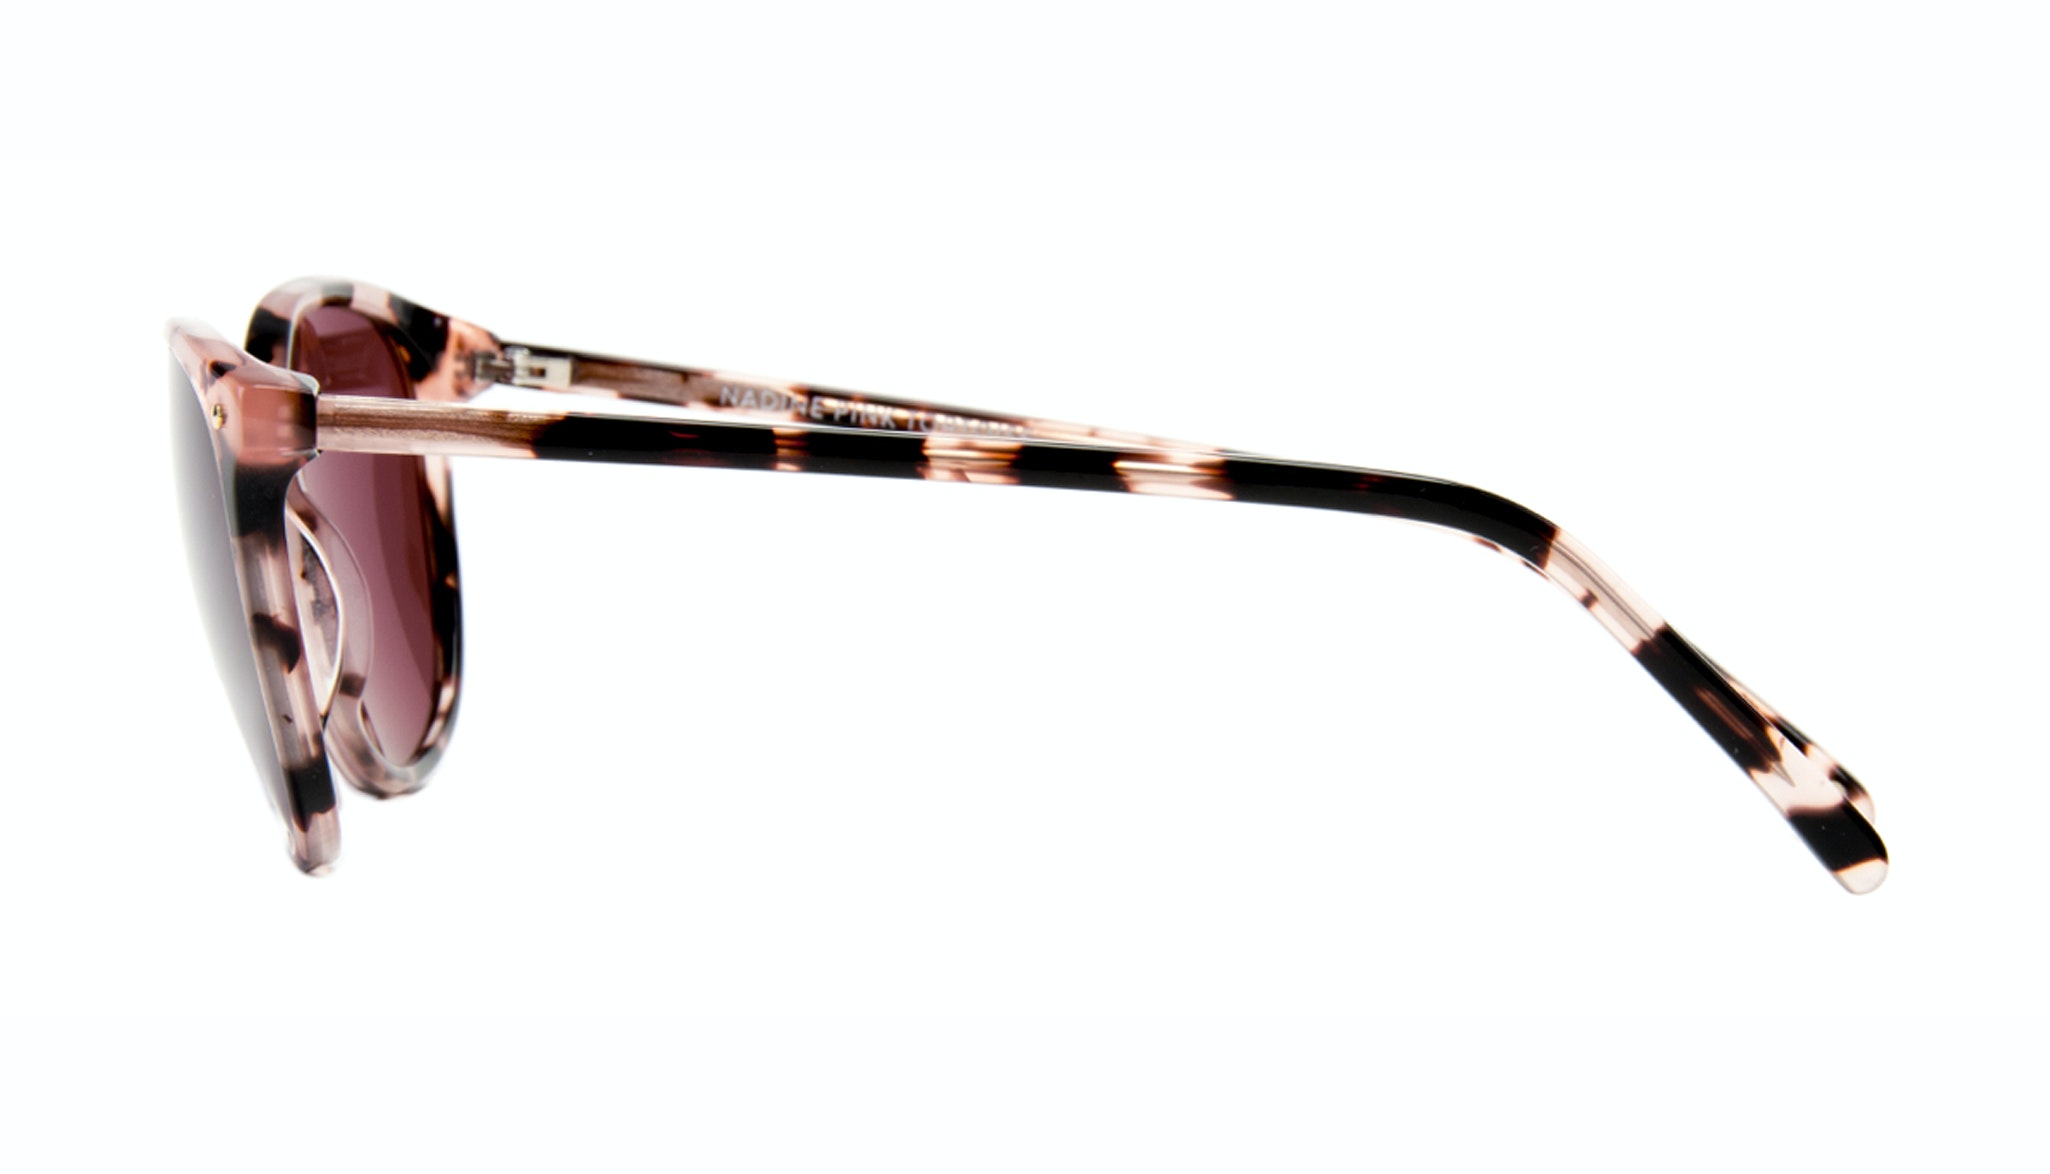 Affordable Fashion Glasses Rectangle Square Round Sunglasses Women Nadine Pink Tortoise Side